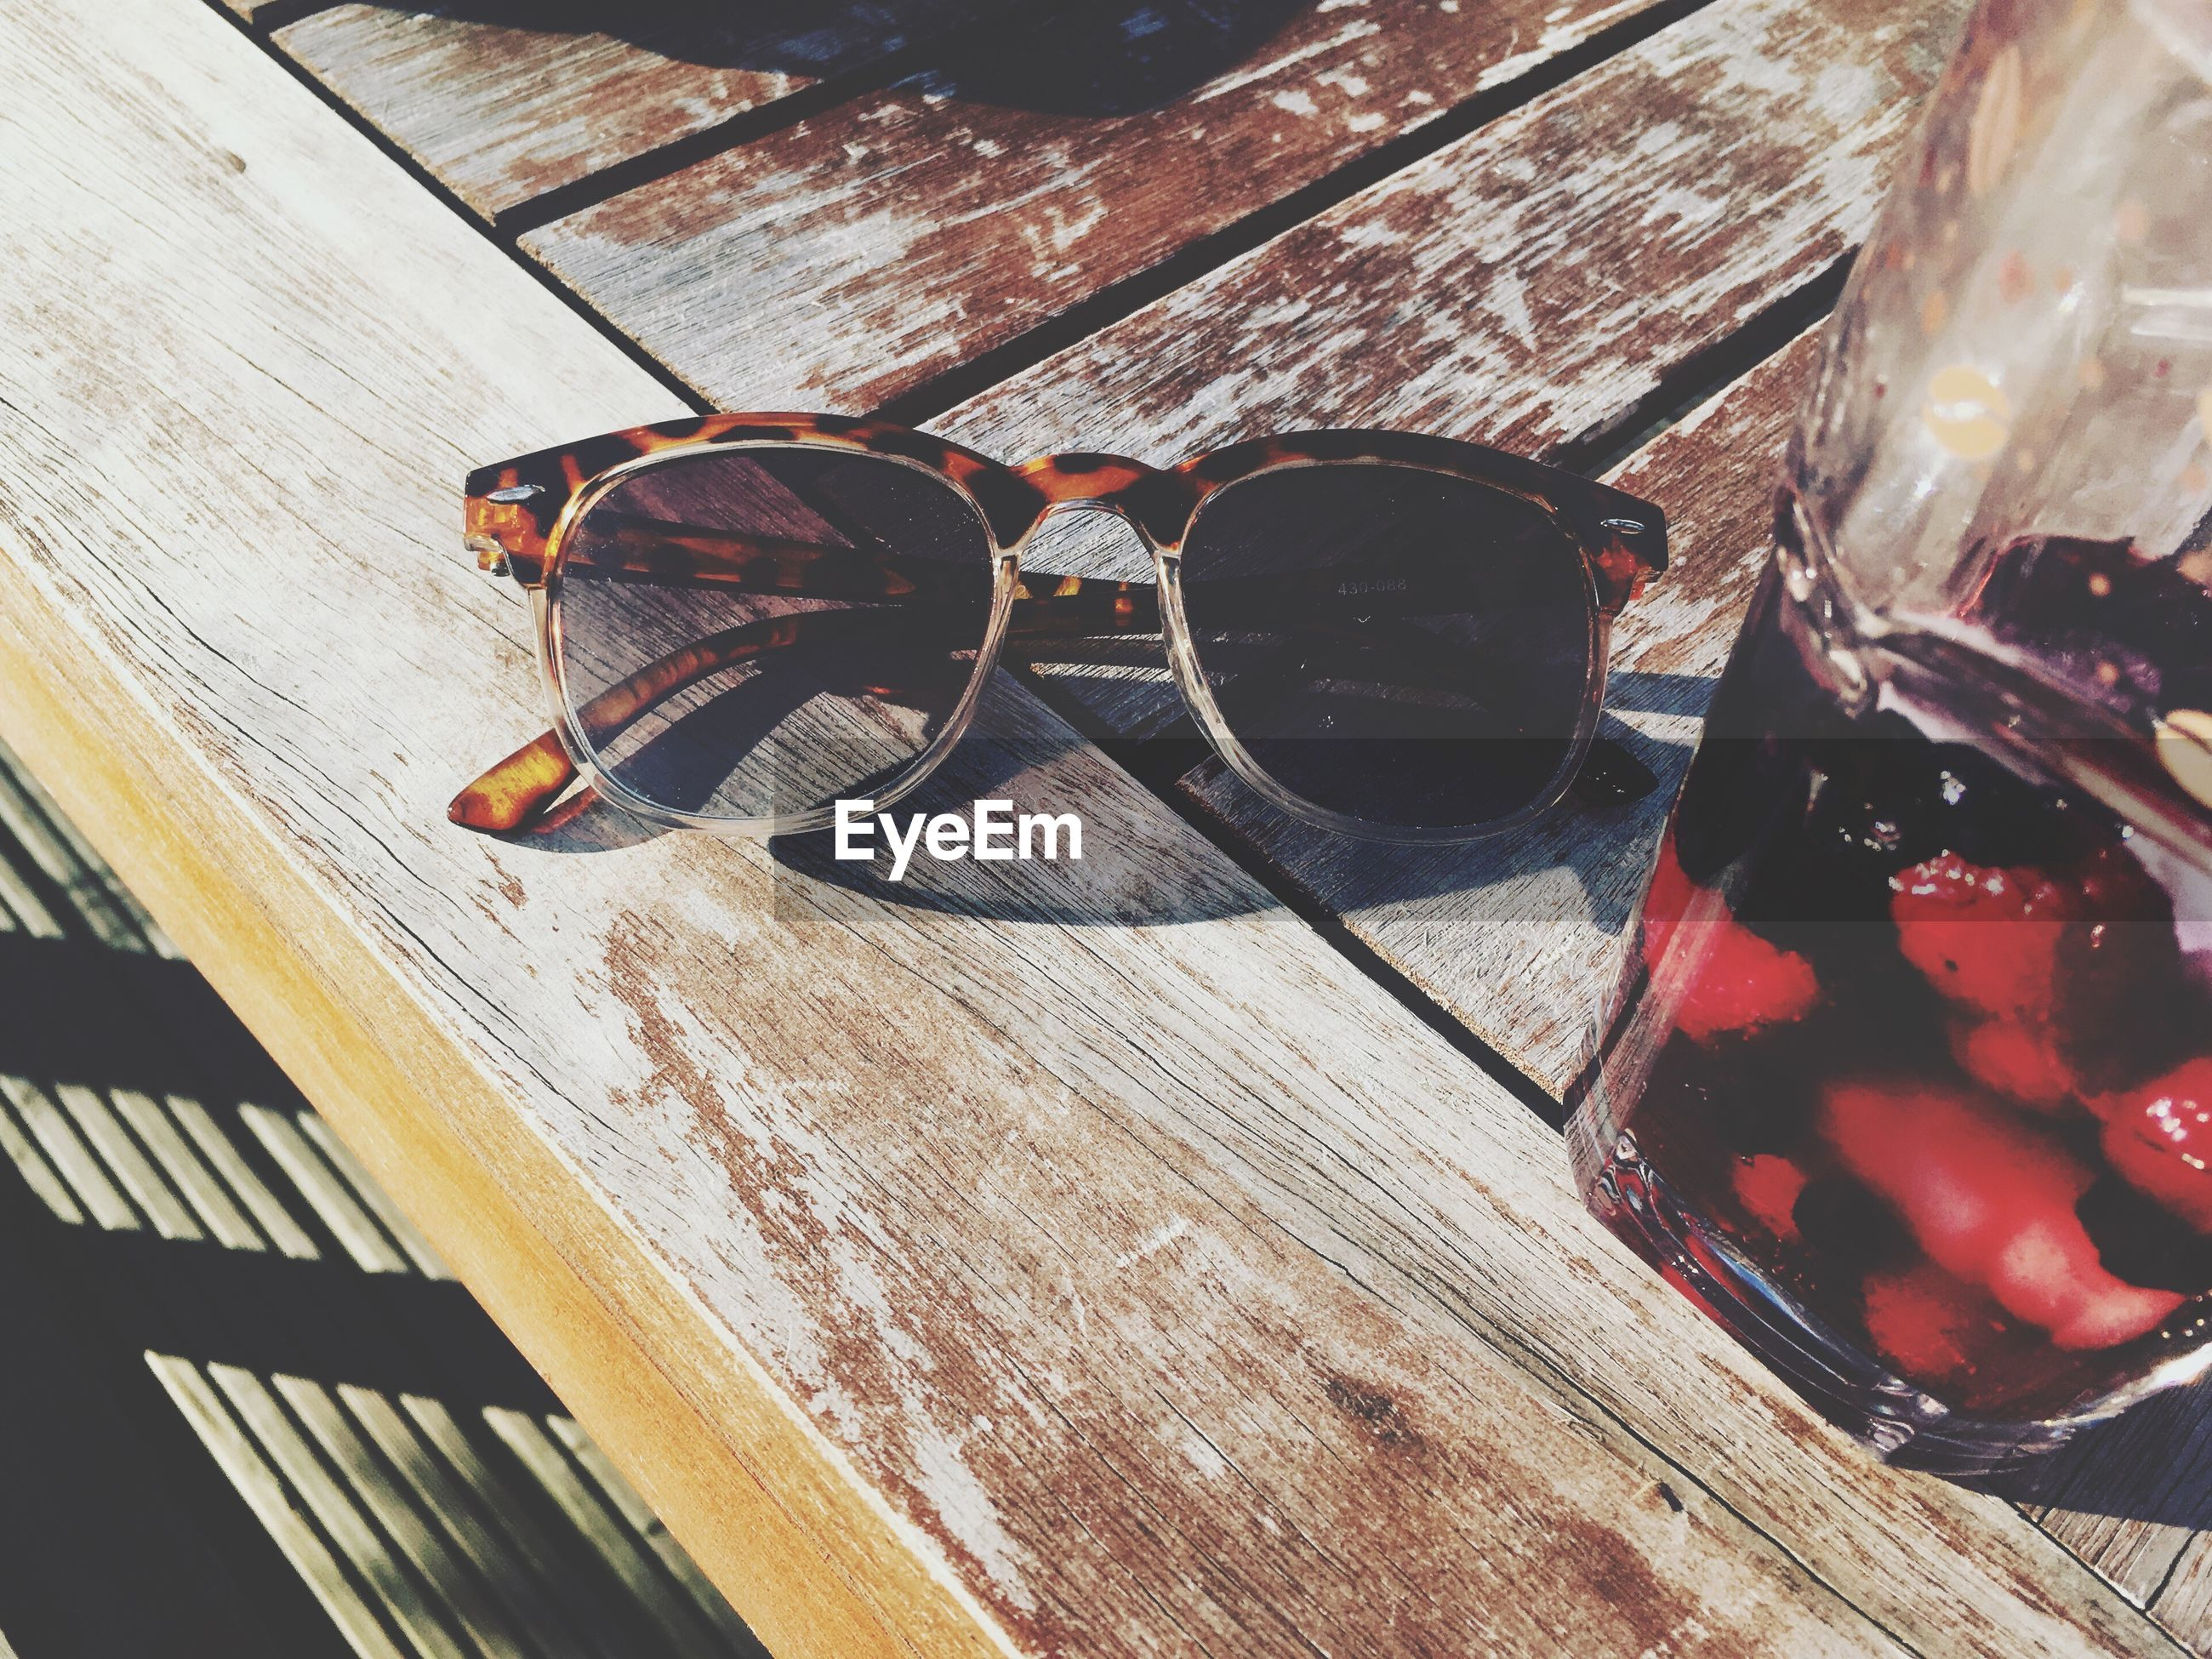 High angle view of sunglasses by drink on table